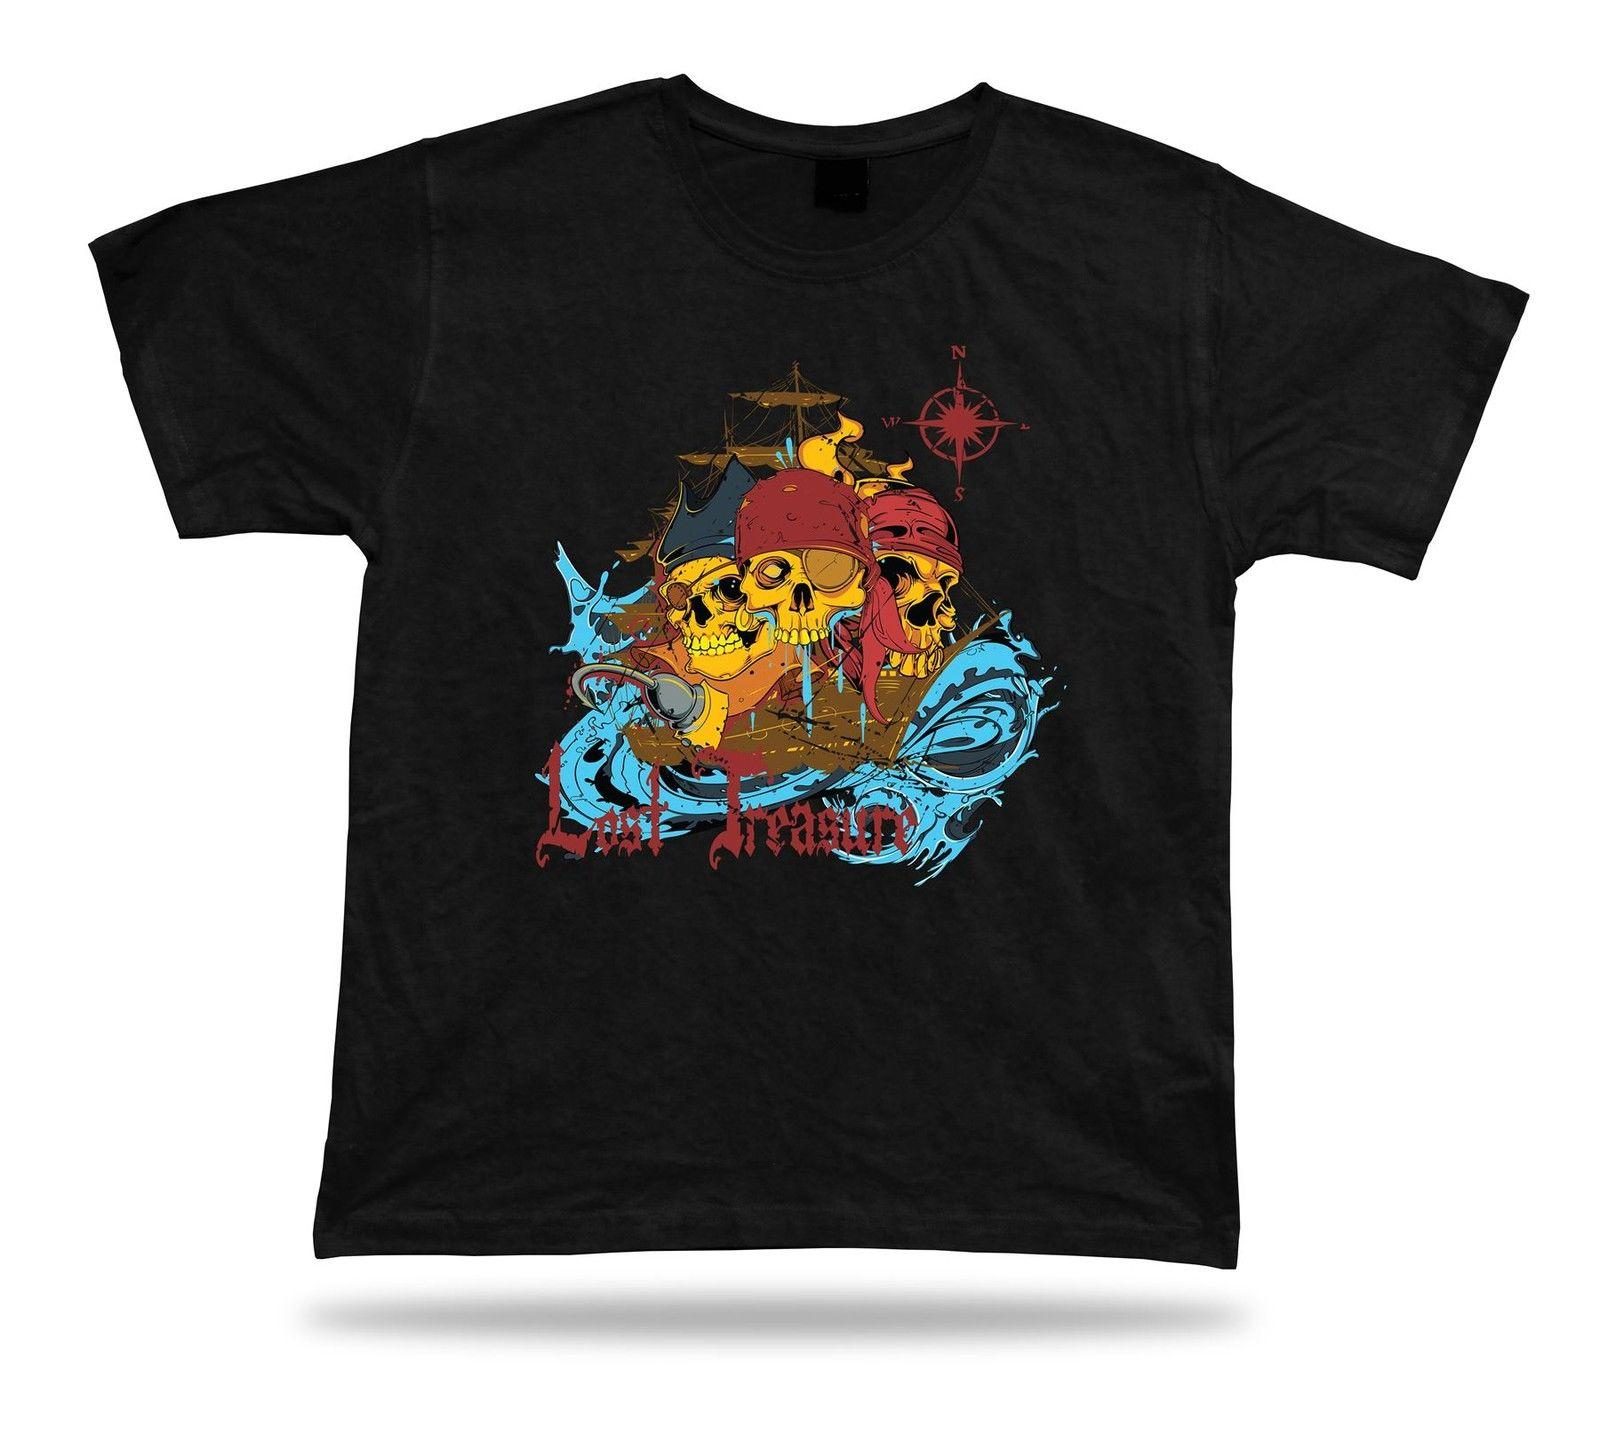 Tshirt Tee Shirt Birthday Gift Idea Pirate World Skull Ship Sea Lost Treasure Cool Tees Graphic T From Goodquality73 1645